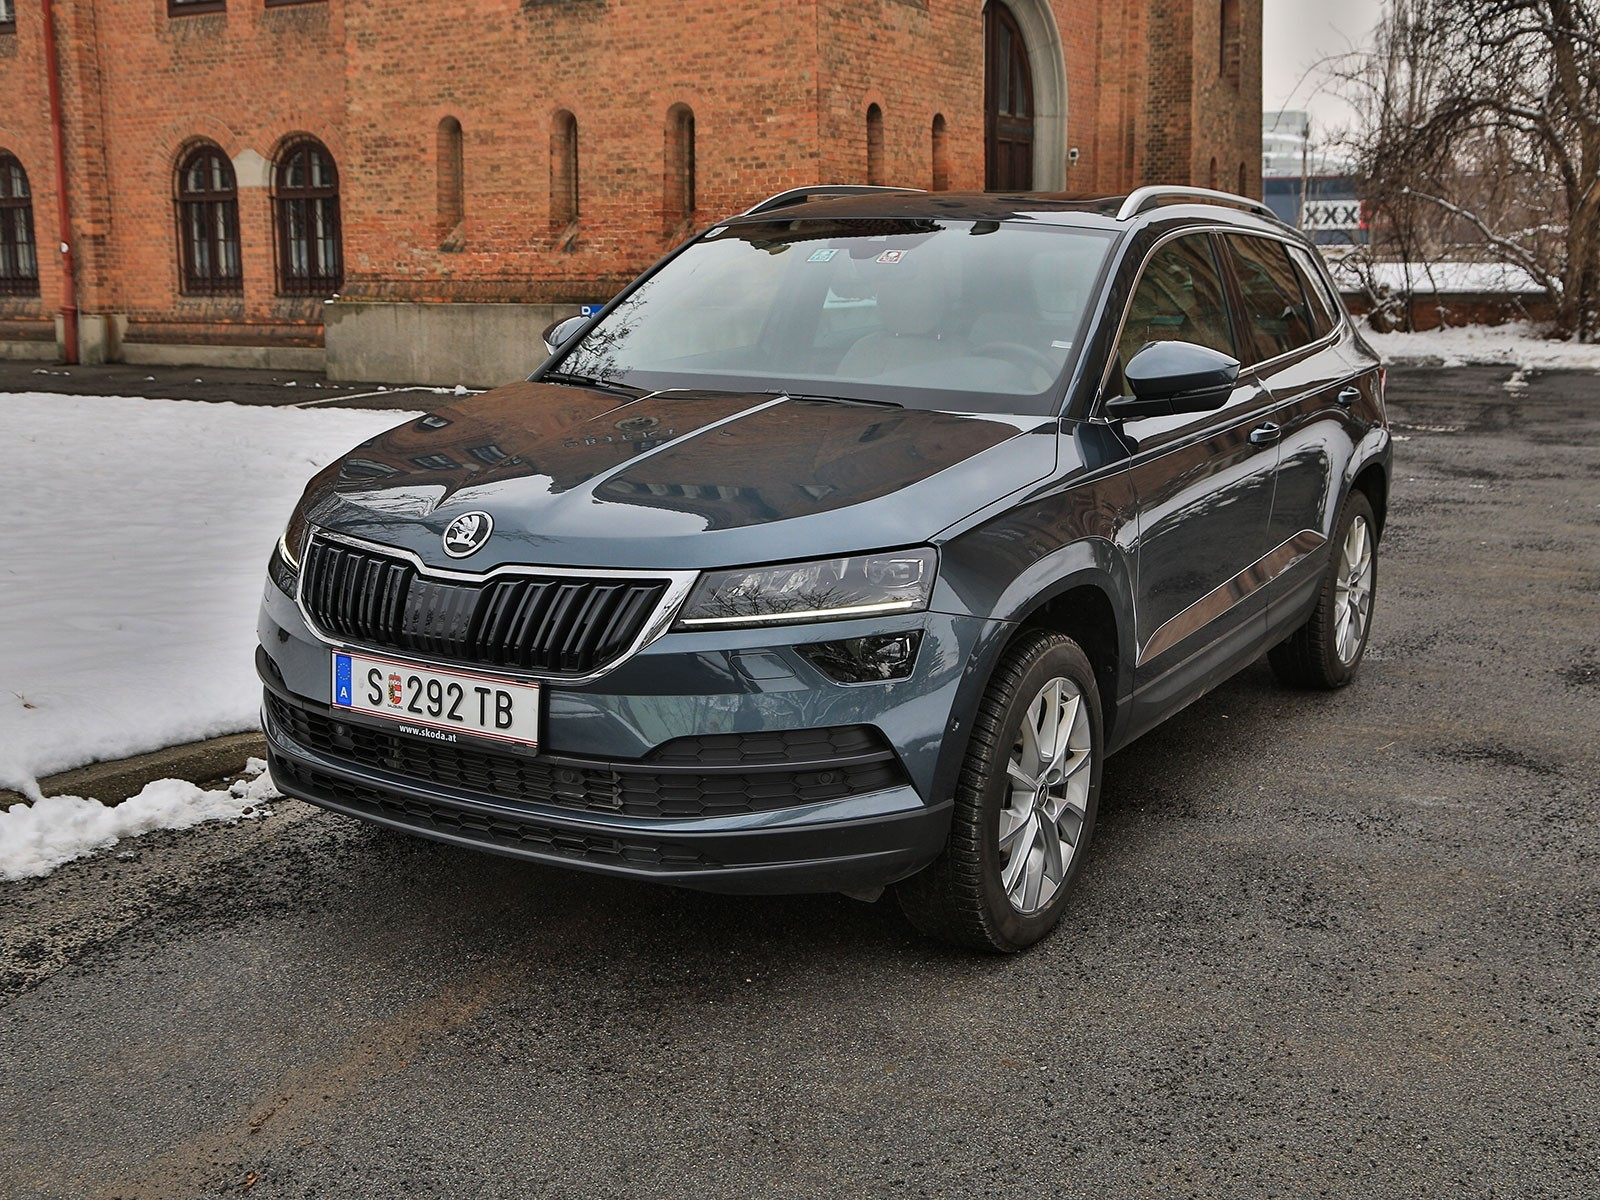 foto skoda karoq 4x4 style tdi 150 ps testbericht vom artikel skoda karoq 150 ps tdi. Black Bedroom Furniture Sets. Home Design Ideas